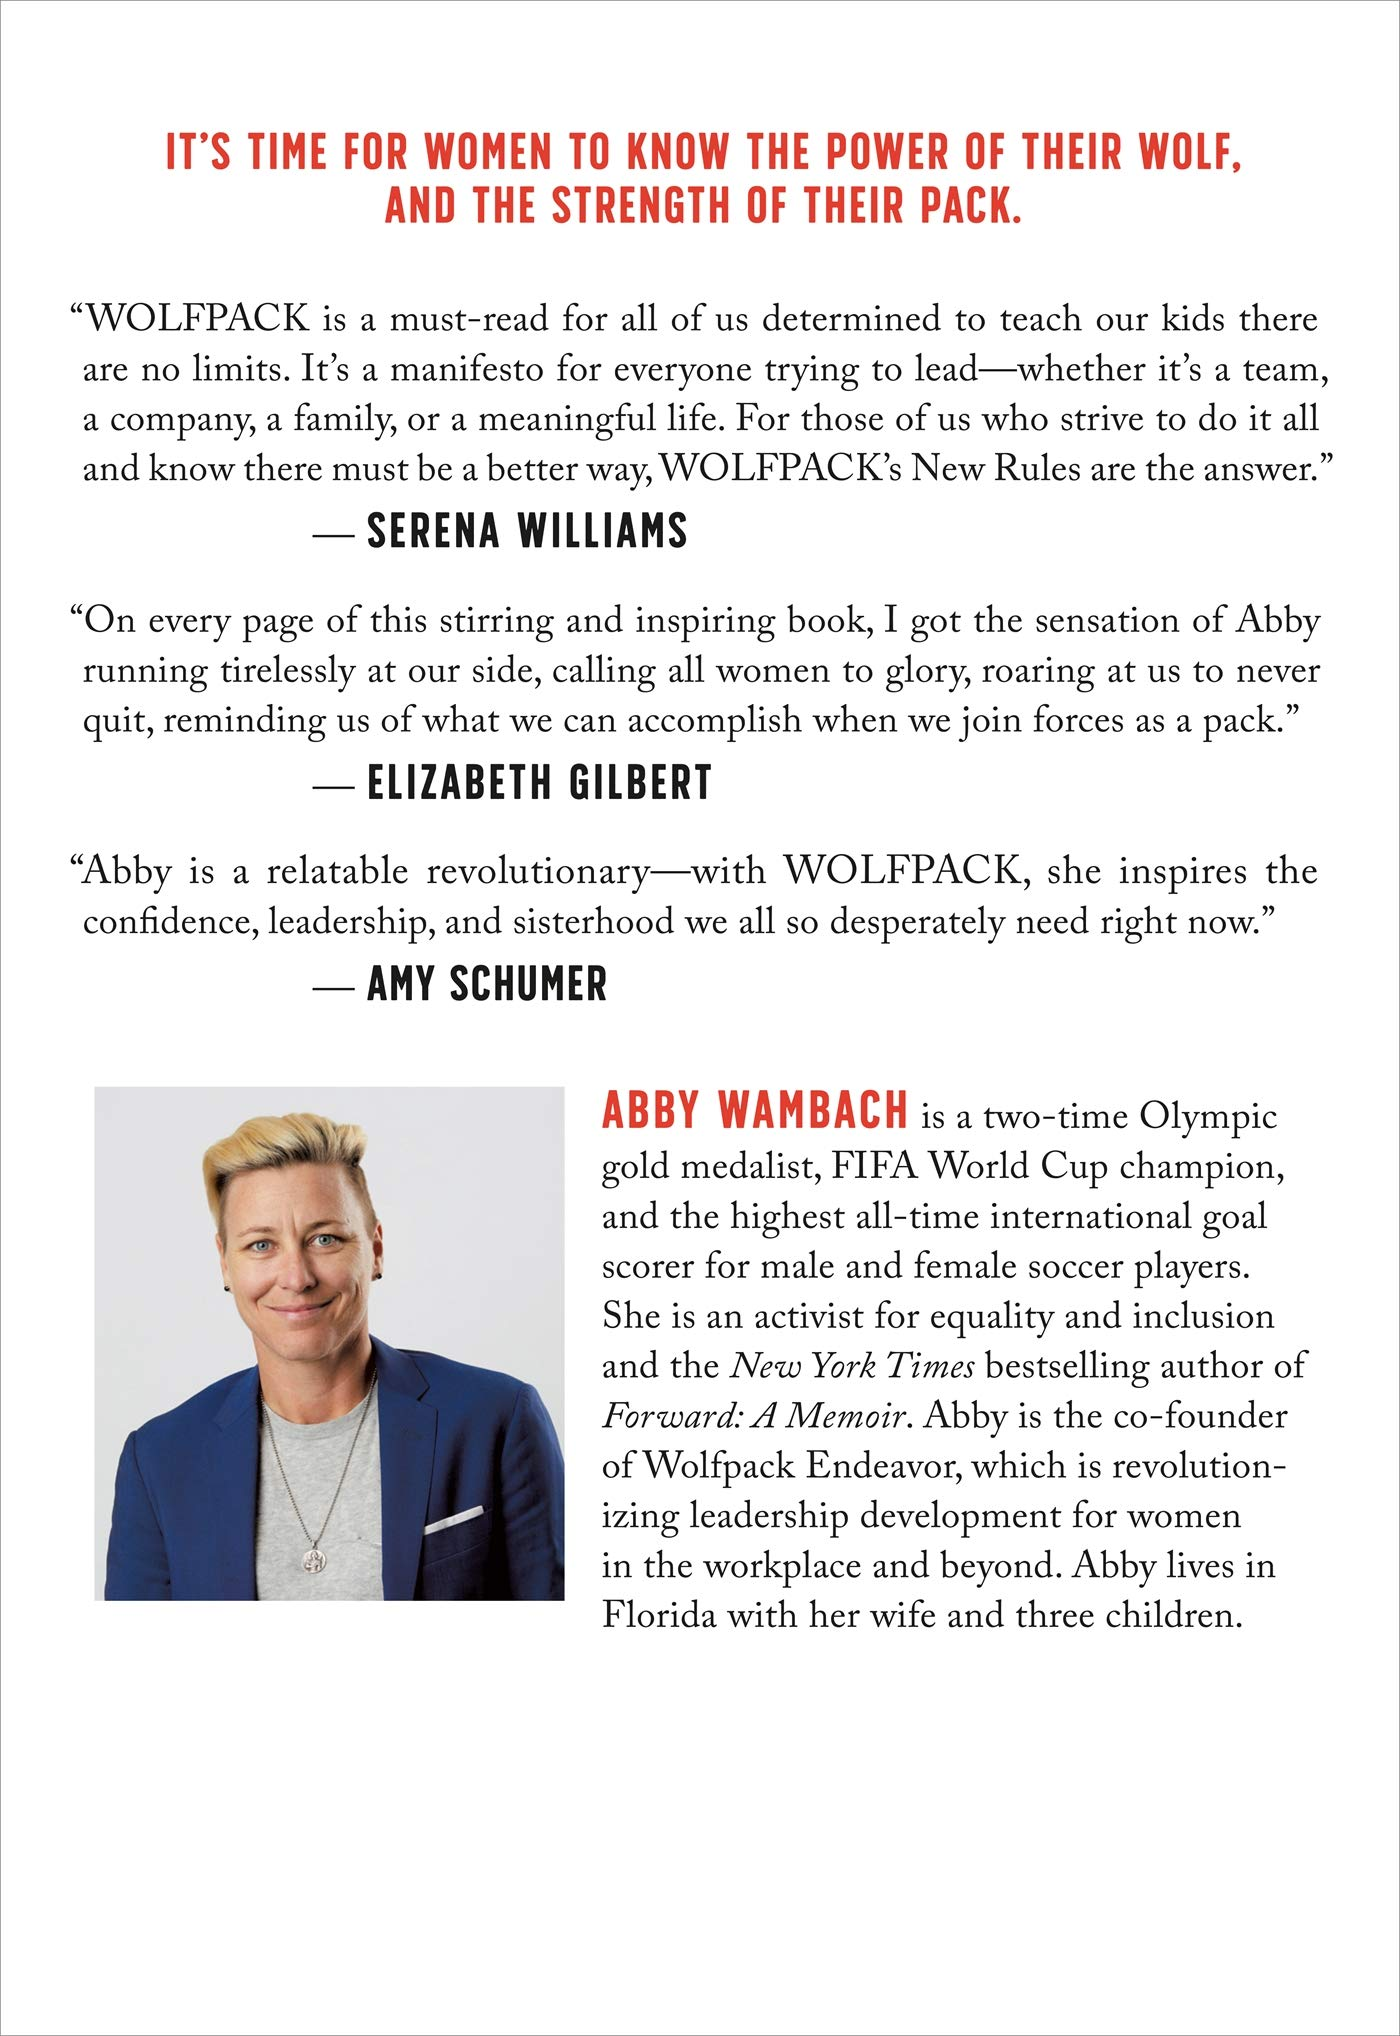 WOLFPACK: How to Come Together, Unleash Our Power, and Change the Game: Amazon.es: Wambach, Abby: Libros en idiomas extranjeros